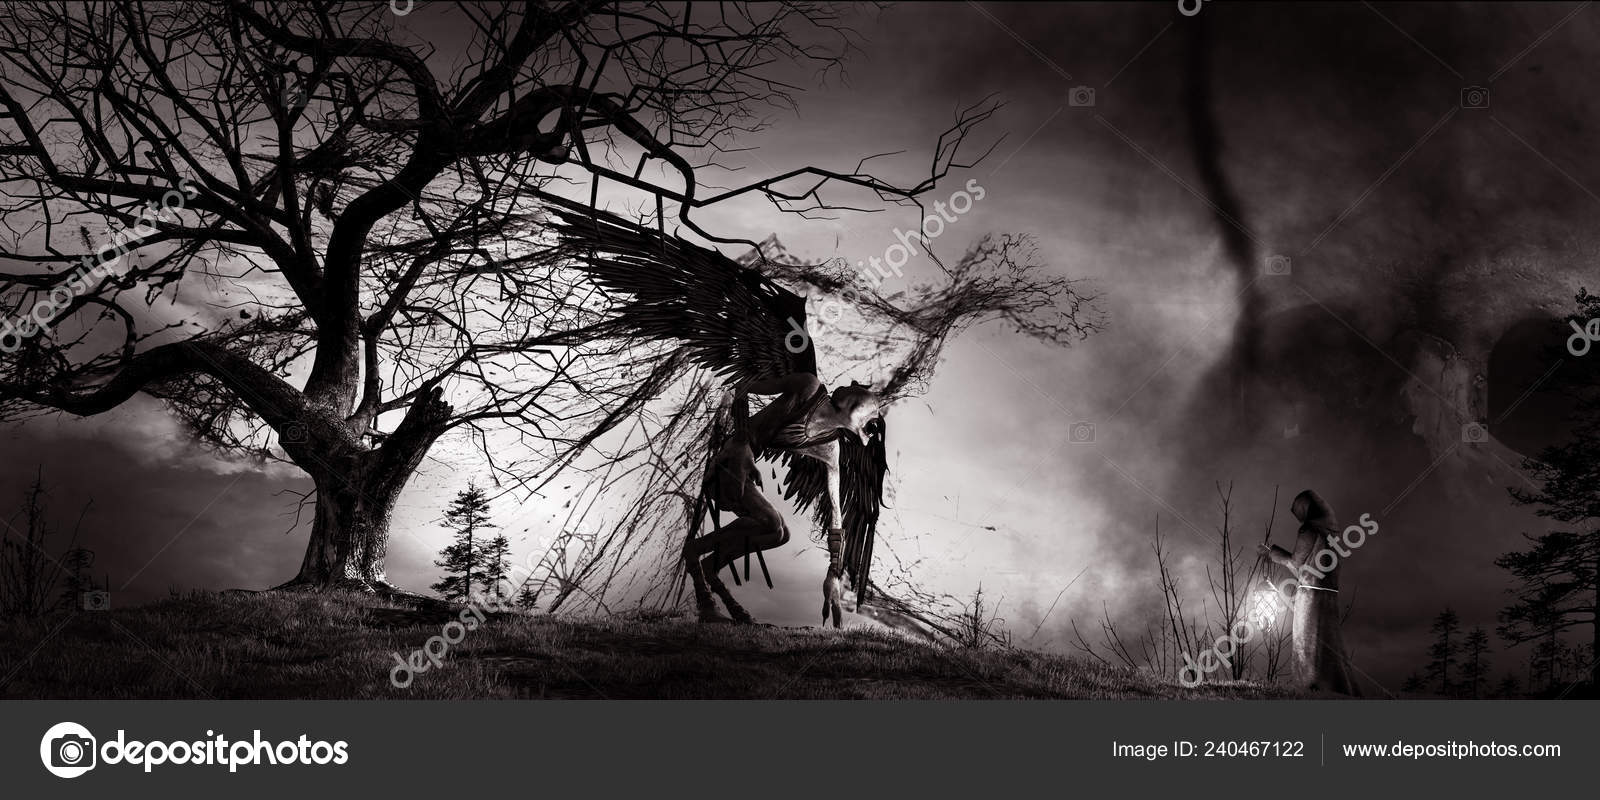 Gothic Scenery Creepy Tree Demon Monk Lantern Stock Photo C Mppriv 240467122